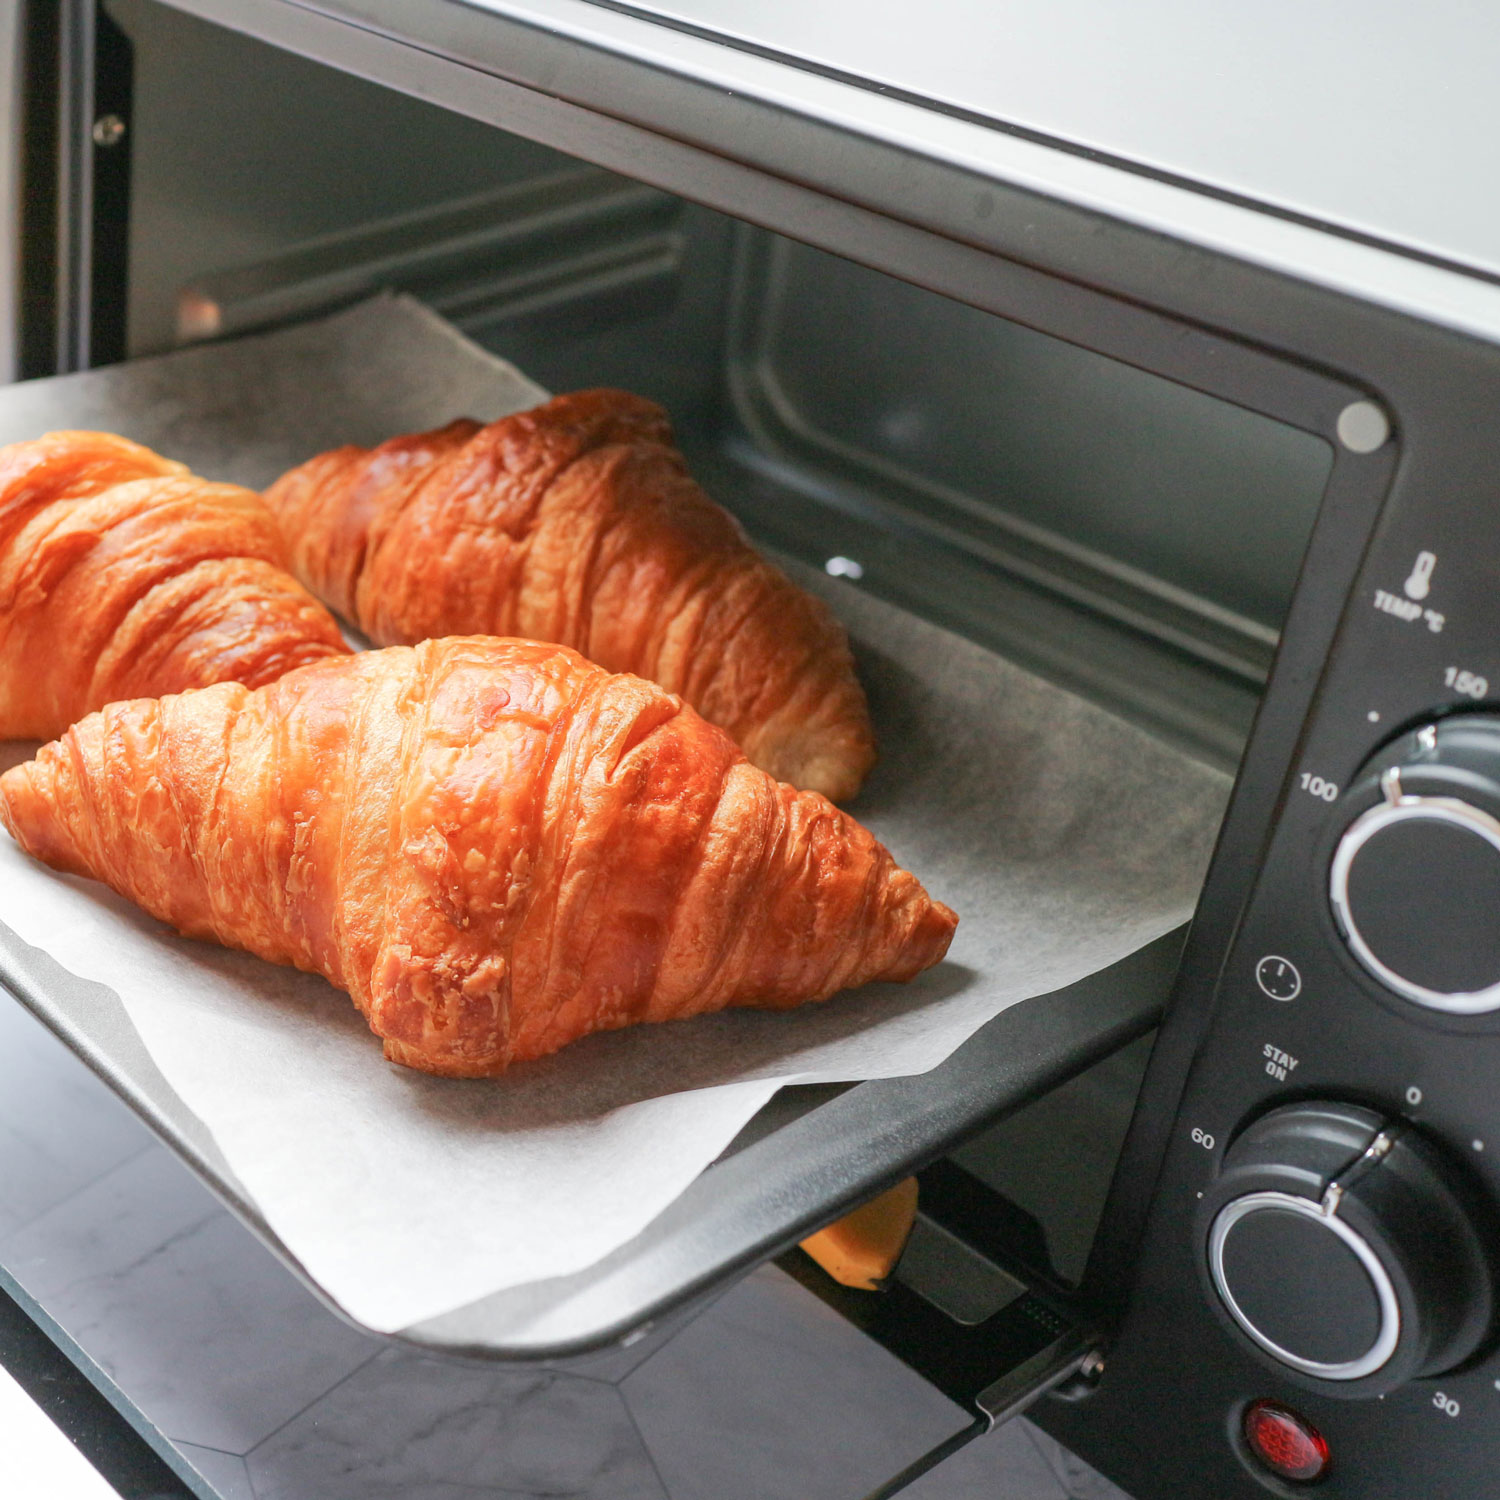 How to Clean a Toaster Oven the Right Way